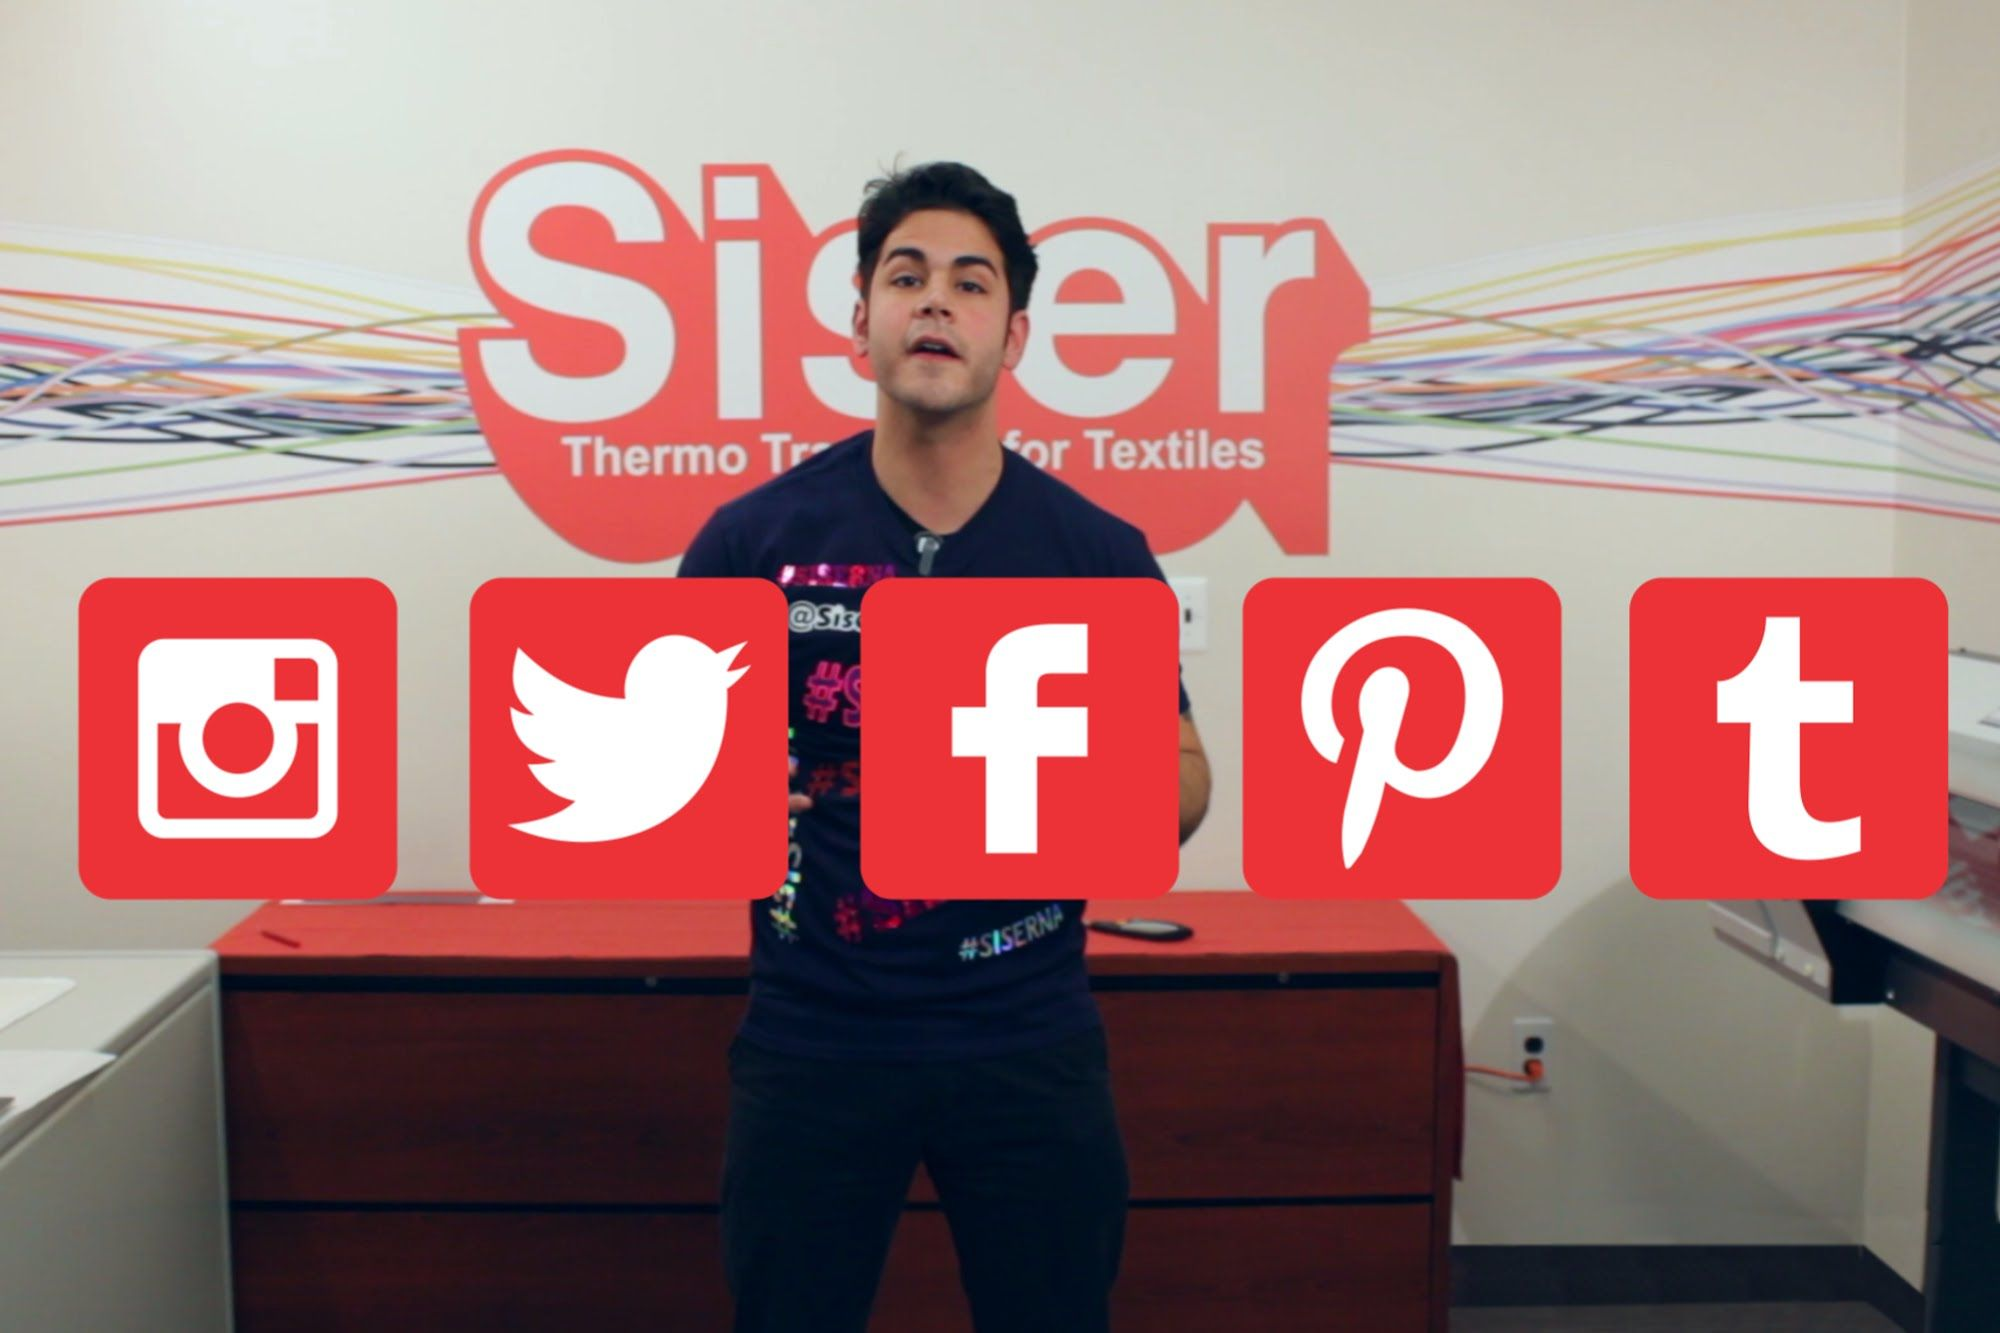 If you're using any of the popular social media sites to promote your work, show us how you've used Siser heat transfer vinyl or print and cut material by using the hashtag #SiserNA in your posts. If it's awesome enough, we'll share the love by reposting it to all our fans and followers! #DIY #SiserNA #siser #heattransfervinyl #craft #ironon #digital #print #cut #etsy #silhouettecameo #cricut #follow4follow #new #art #hashtag #vinyl #HTV #easyweed #glitter #facebook #instagram #twitter…